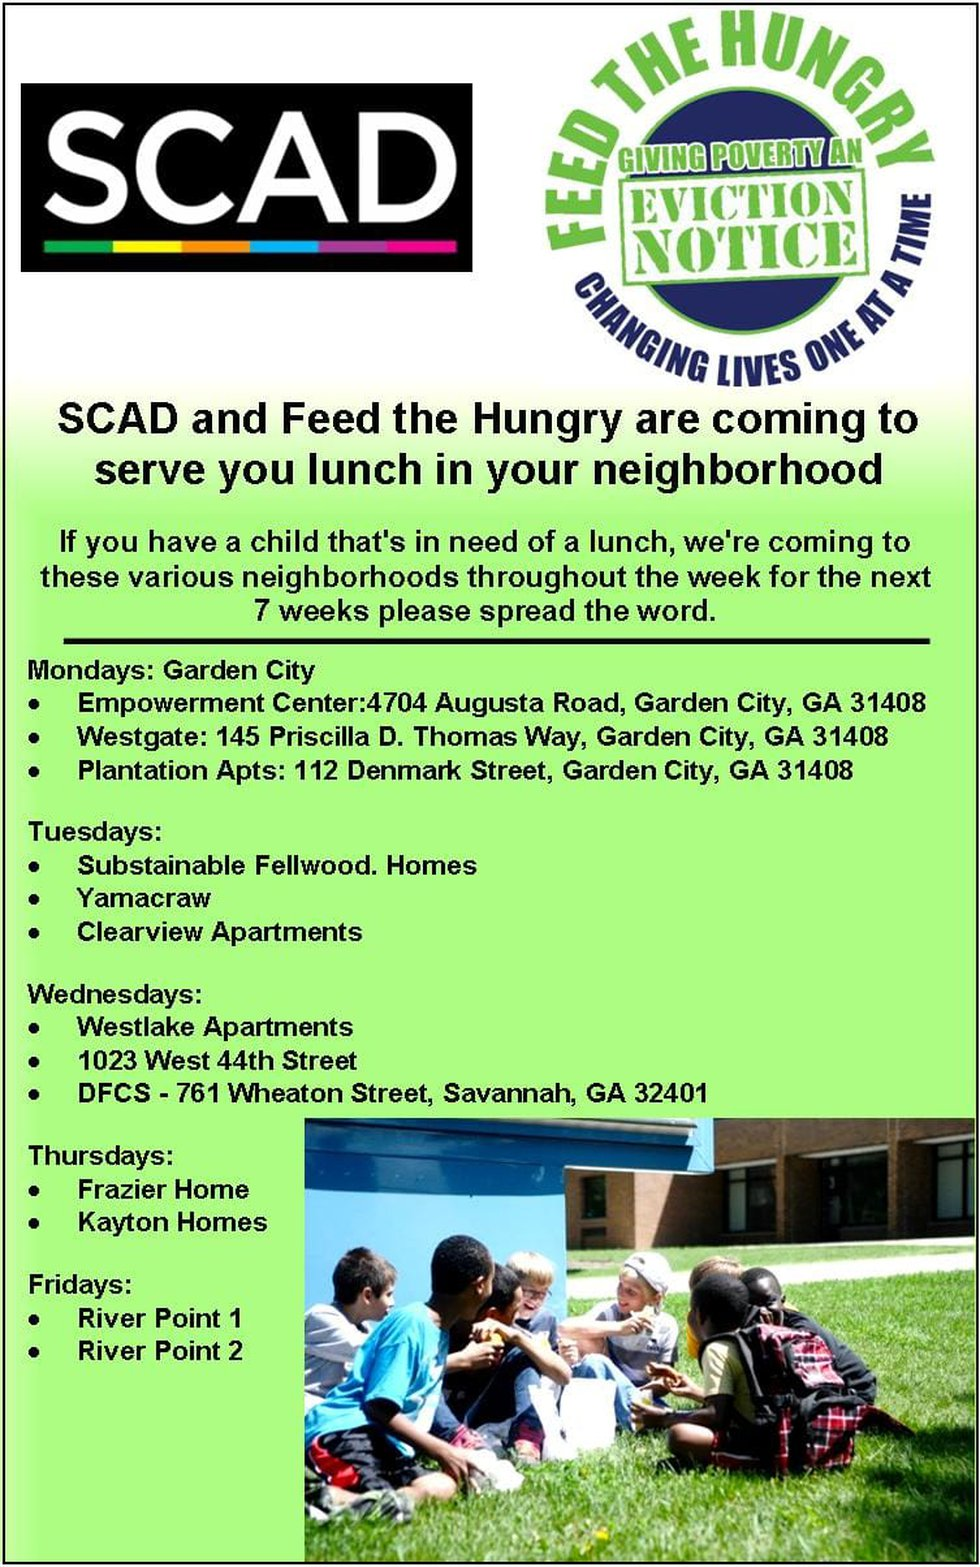 SCAD and FTH providing meal to children